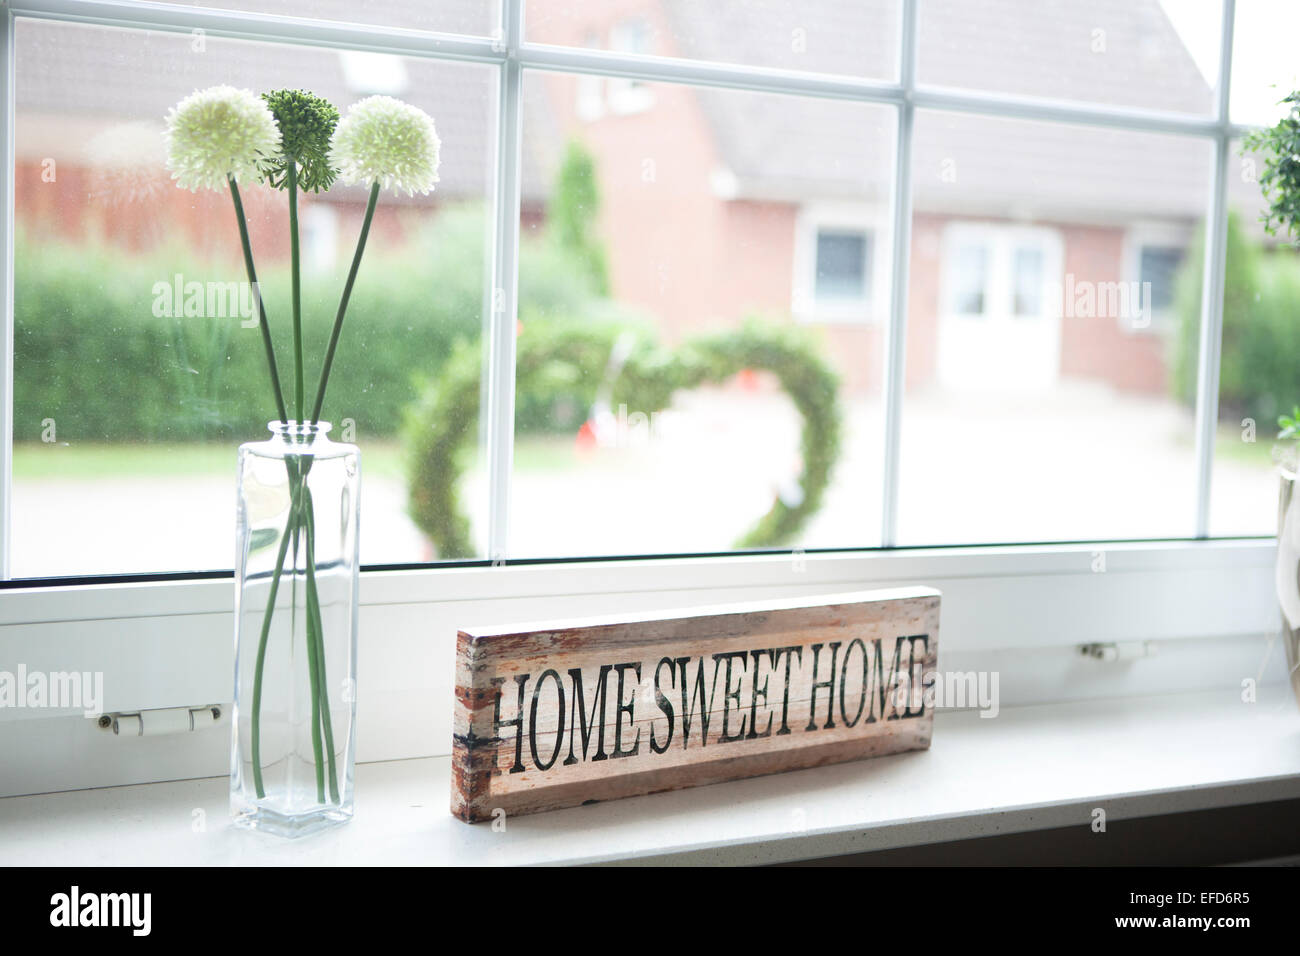 on a window sill in the house is a sign with the text home sweet home - Stock Image